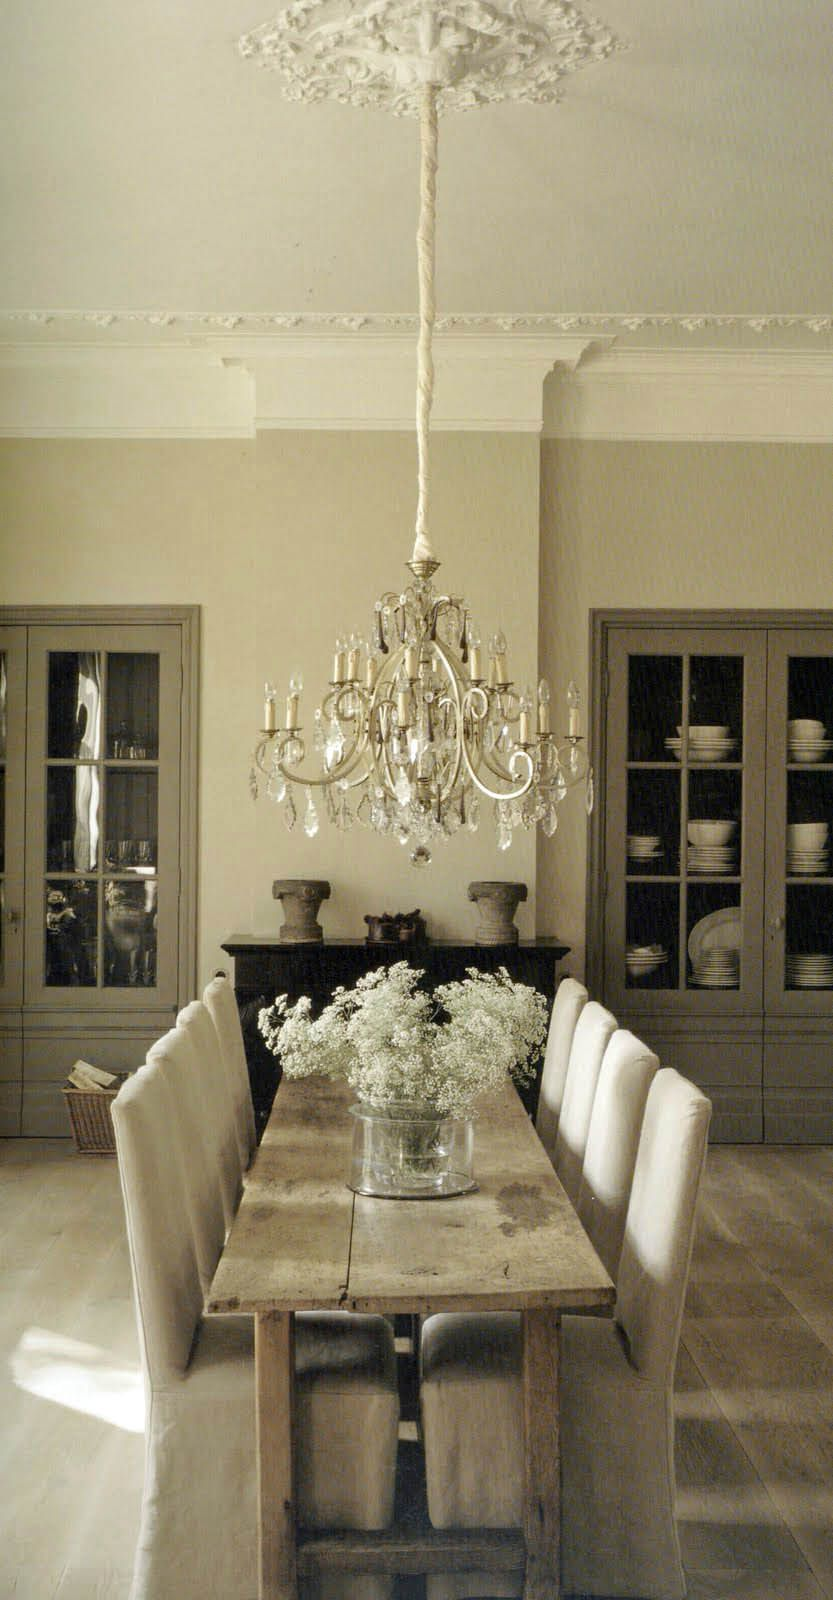 Restoration hardware pendant lighting google search almost there